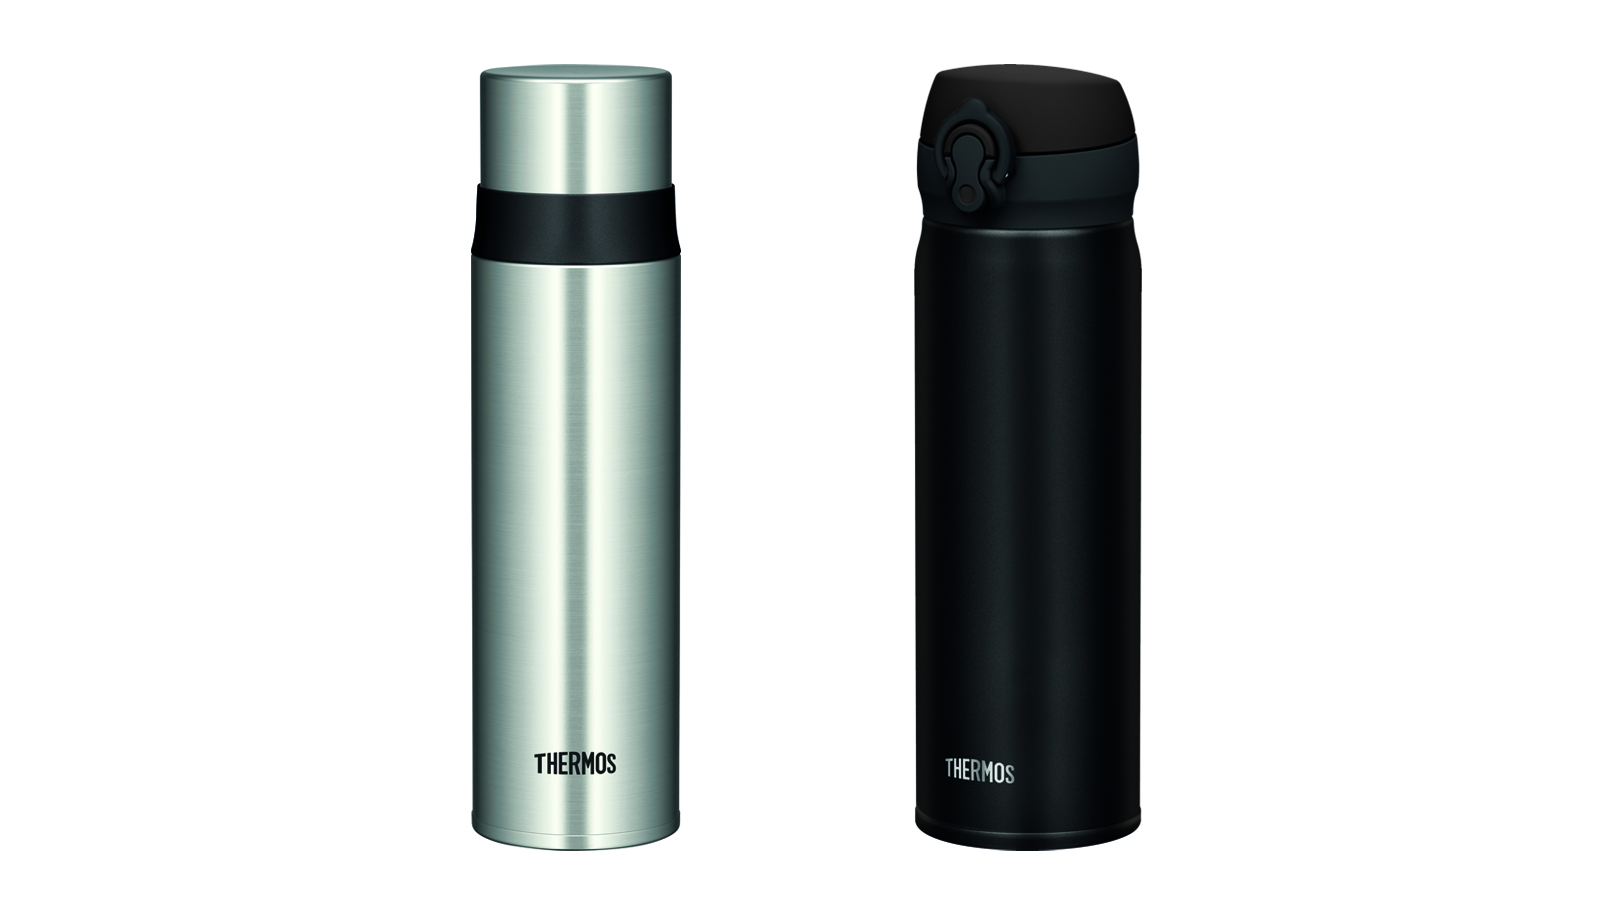 Thermos frontpage